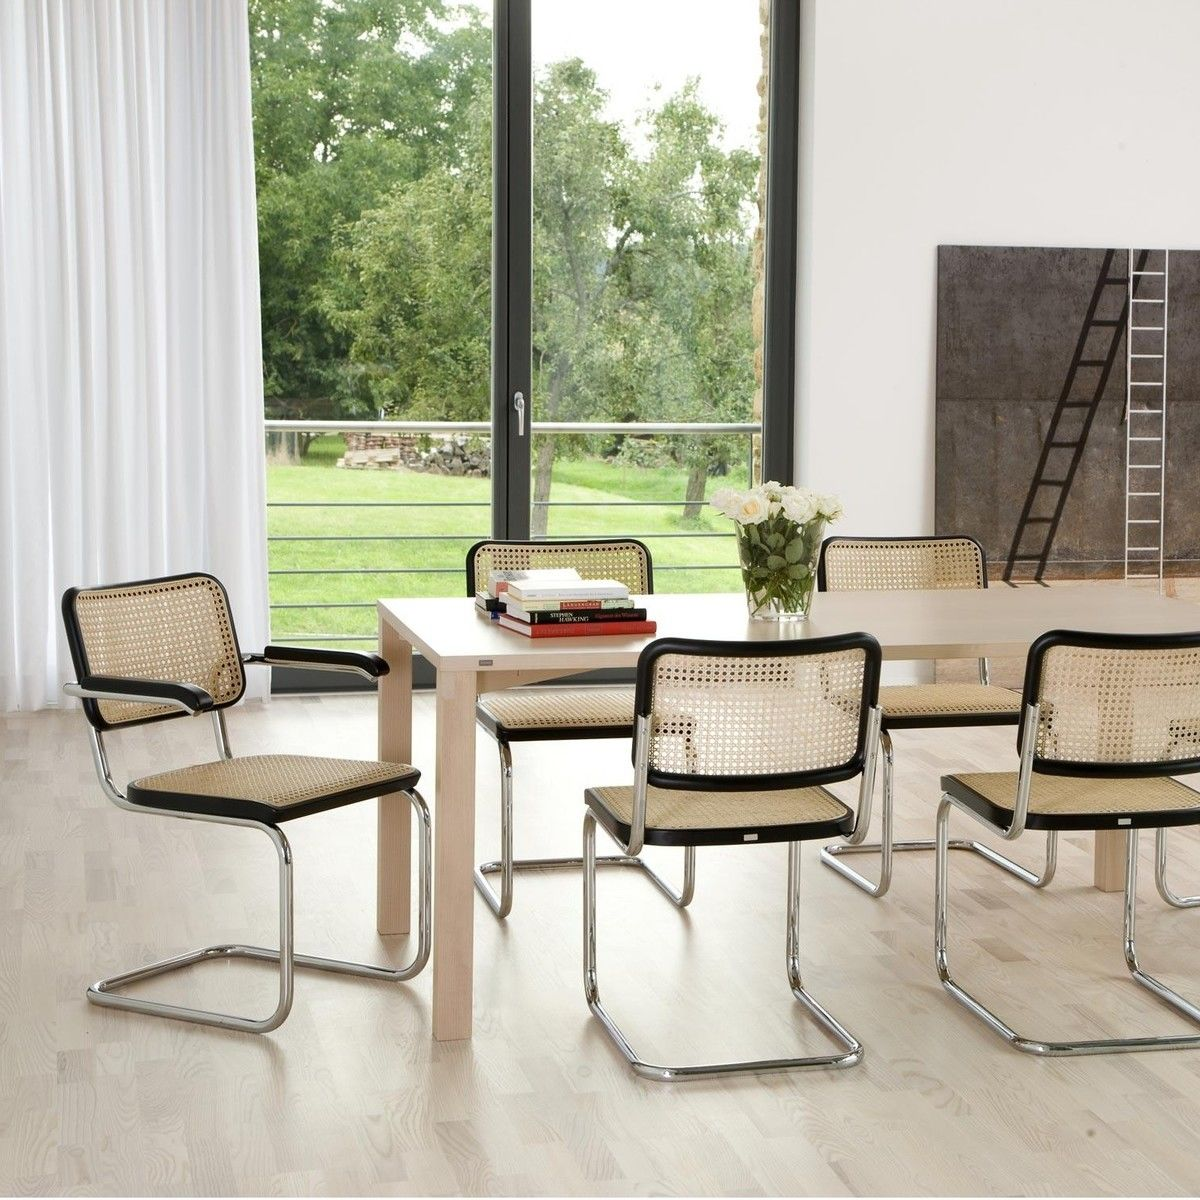 thonet s 64 freischwinger armlehnstuhl thonet. Black Bedroom Furniture Sets. Home Design Ideas